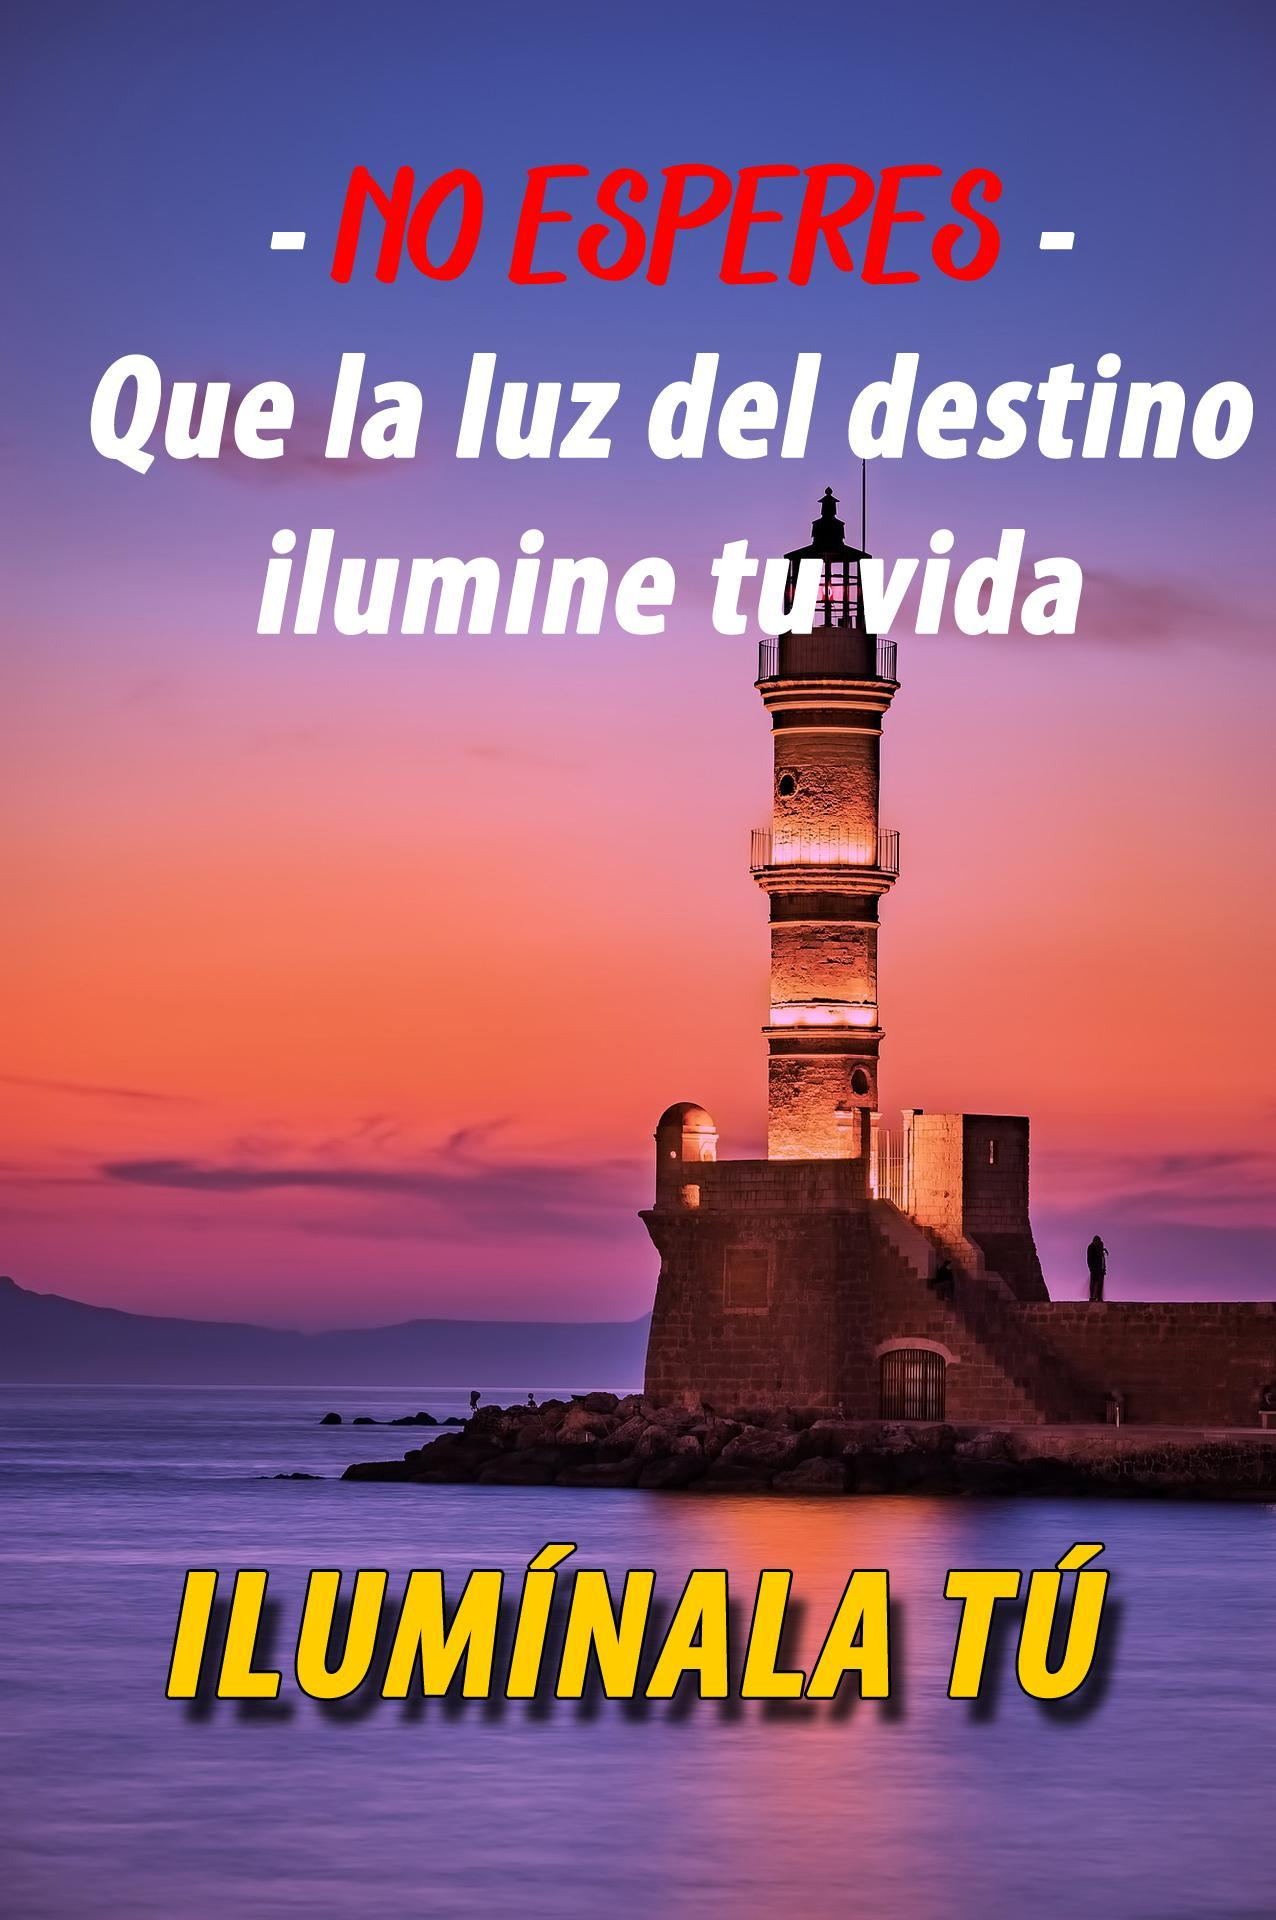 Frases Filosoficas Con Imagenes Para Compartir For Android